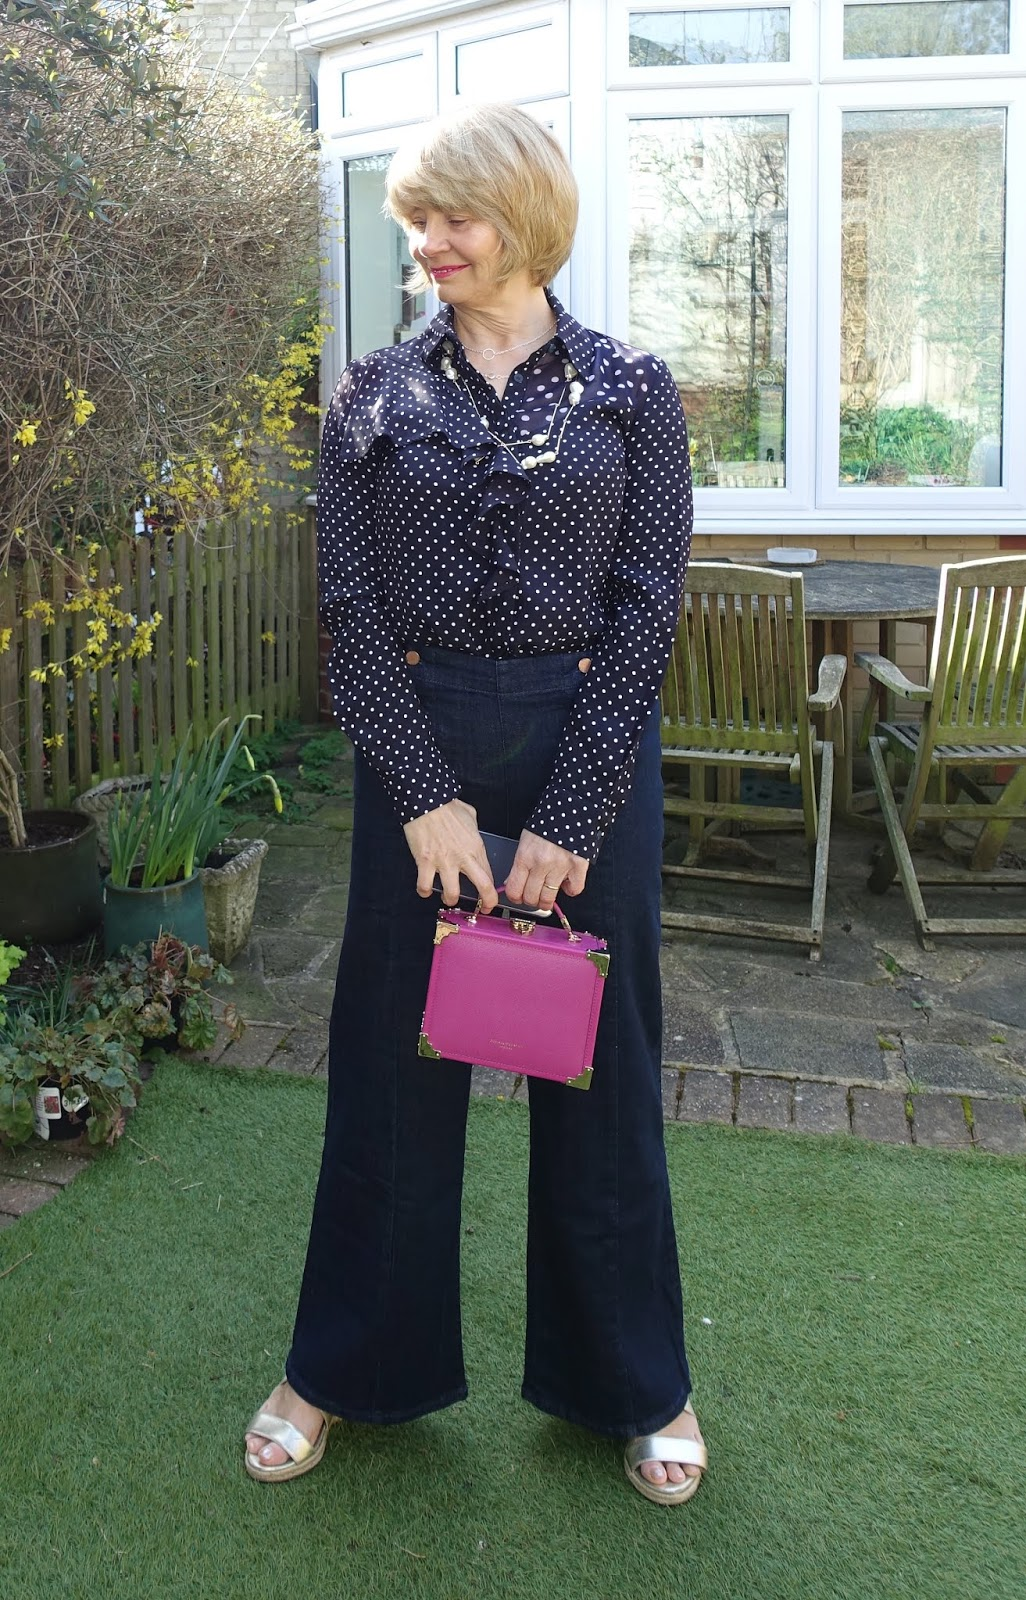 Dark indigo jeans in a flared cut from Boden worn with a polka dot blouse